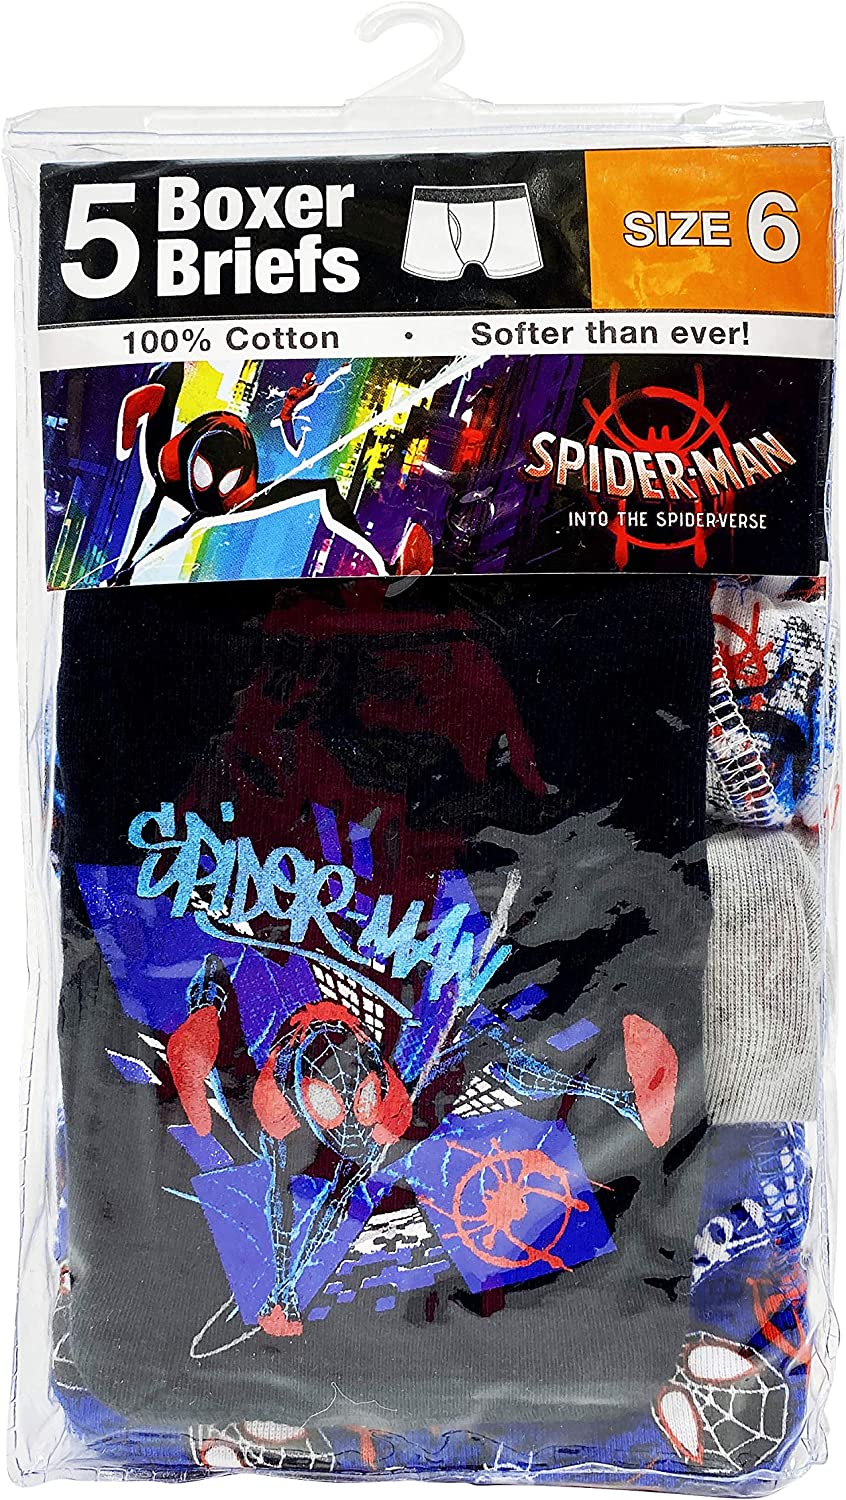 Spiderman Boys Spiderverse Boxer Brief 5-Pack, Print May Vary: Clothing